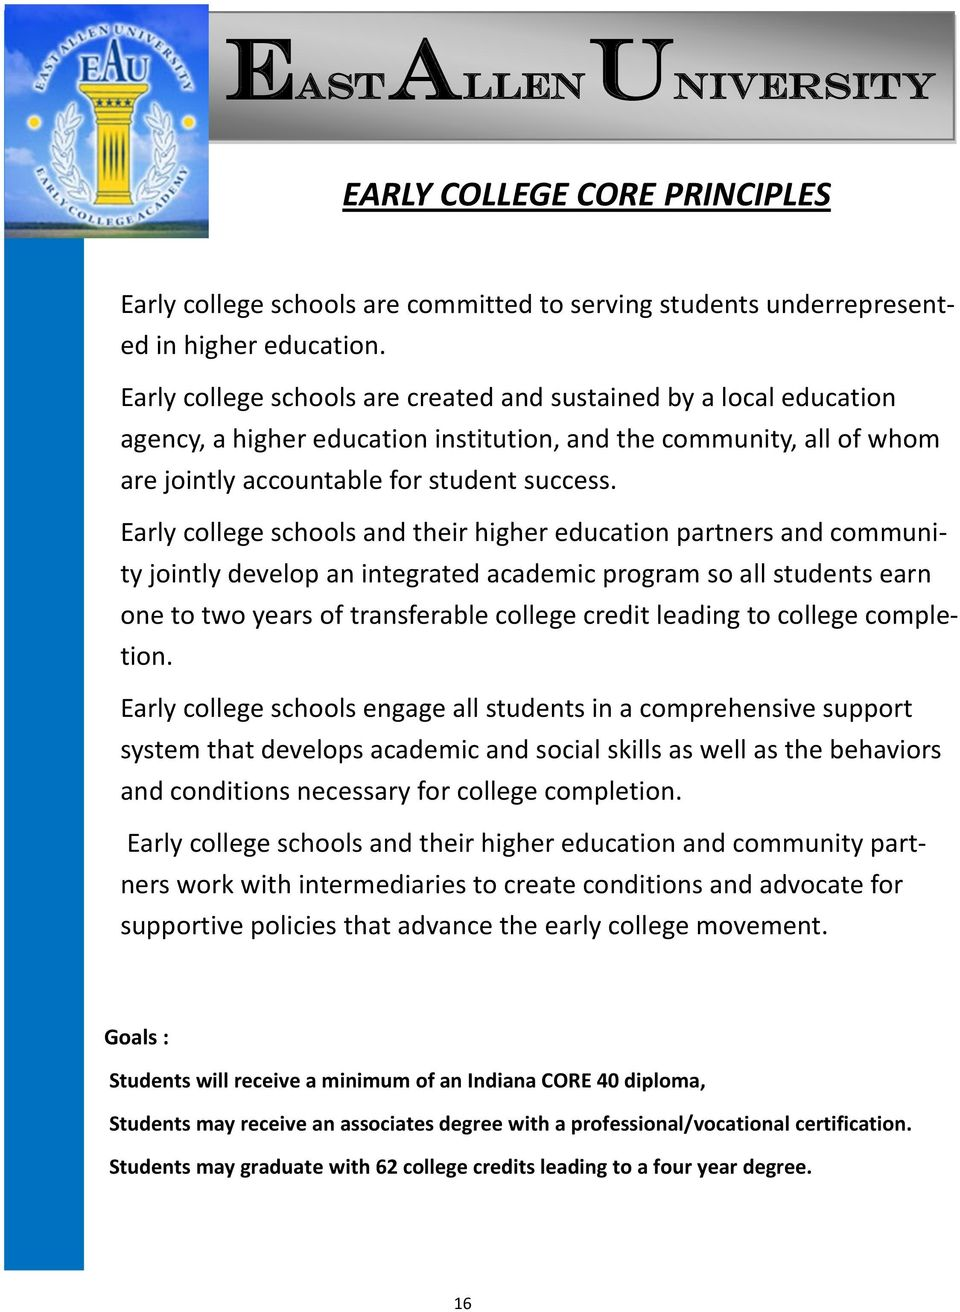 Early college schools and their higher education partners and community jointly develop an integrated academic program so all students earn one to two years of transferable college credit leading to